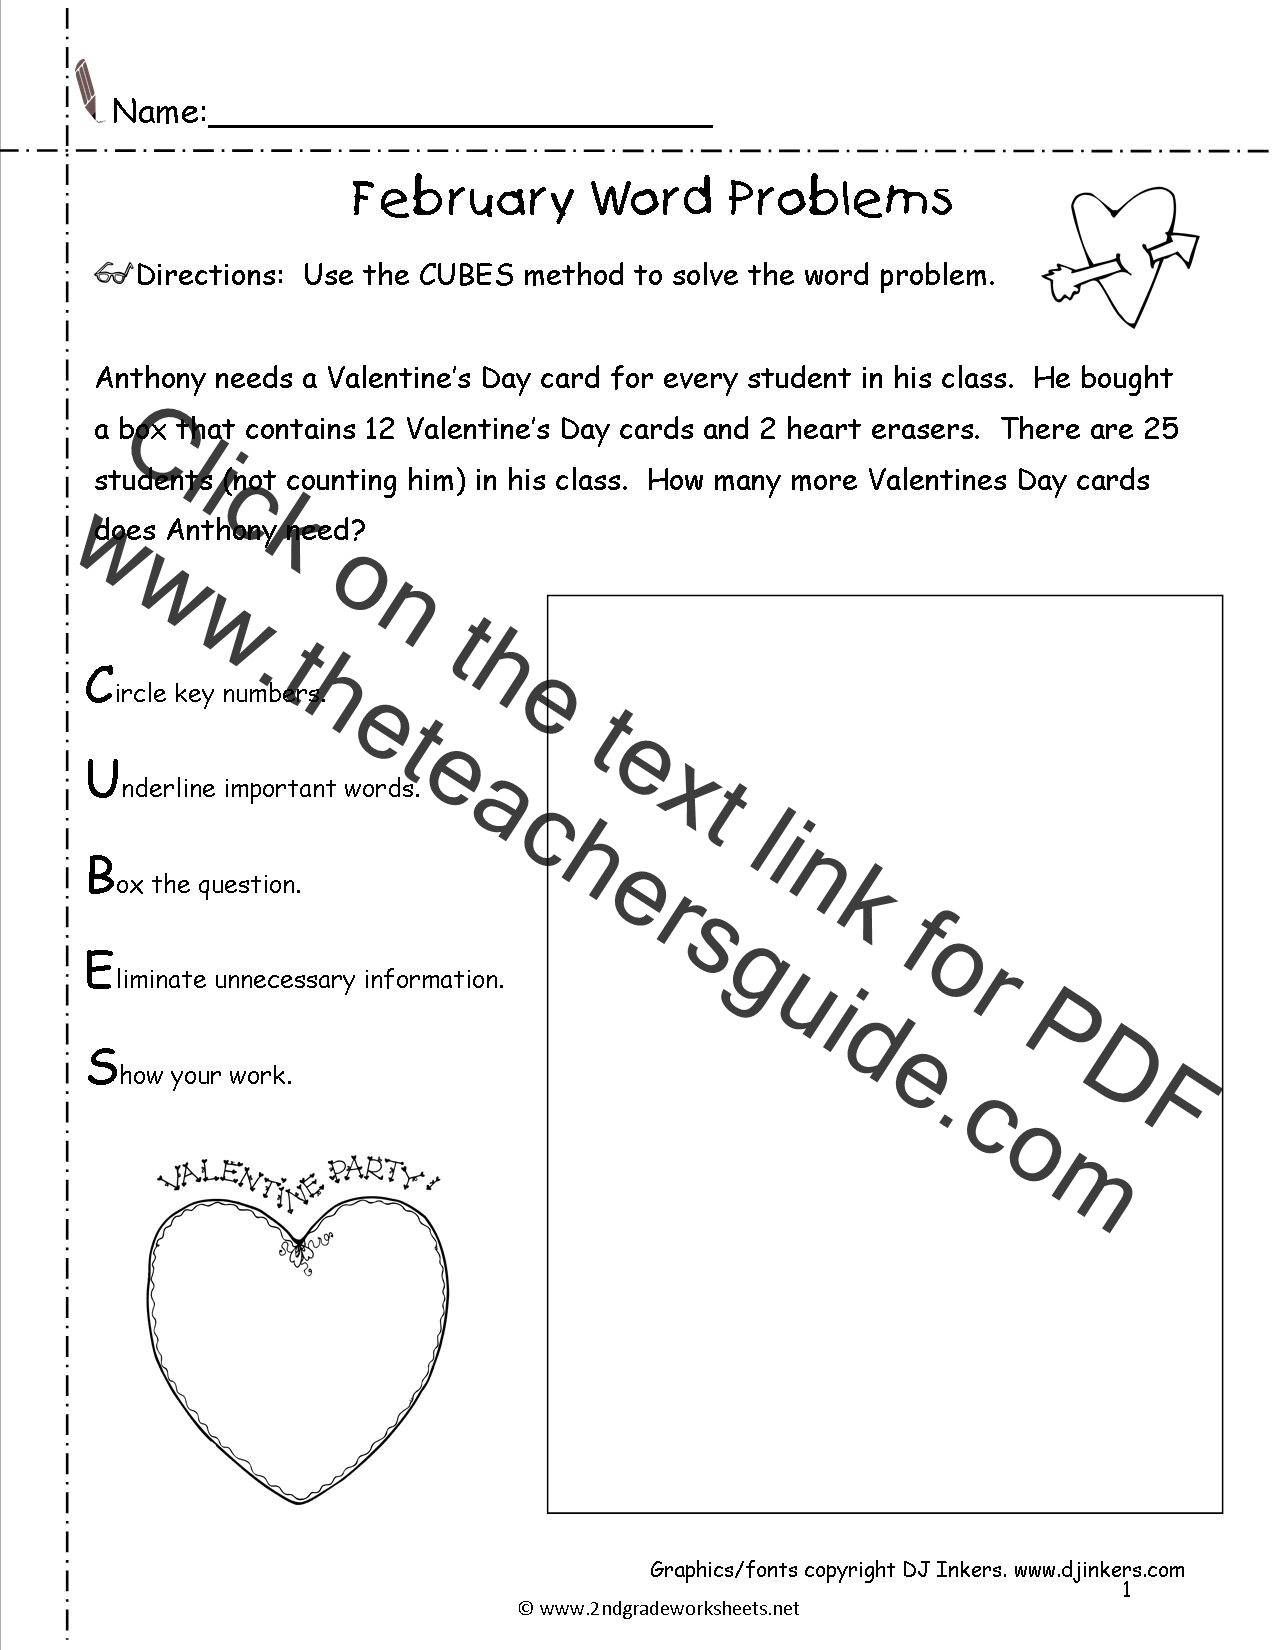 February Lesson Plans Printouts Themes Crafts And Holidays